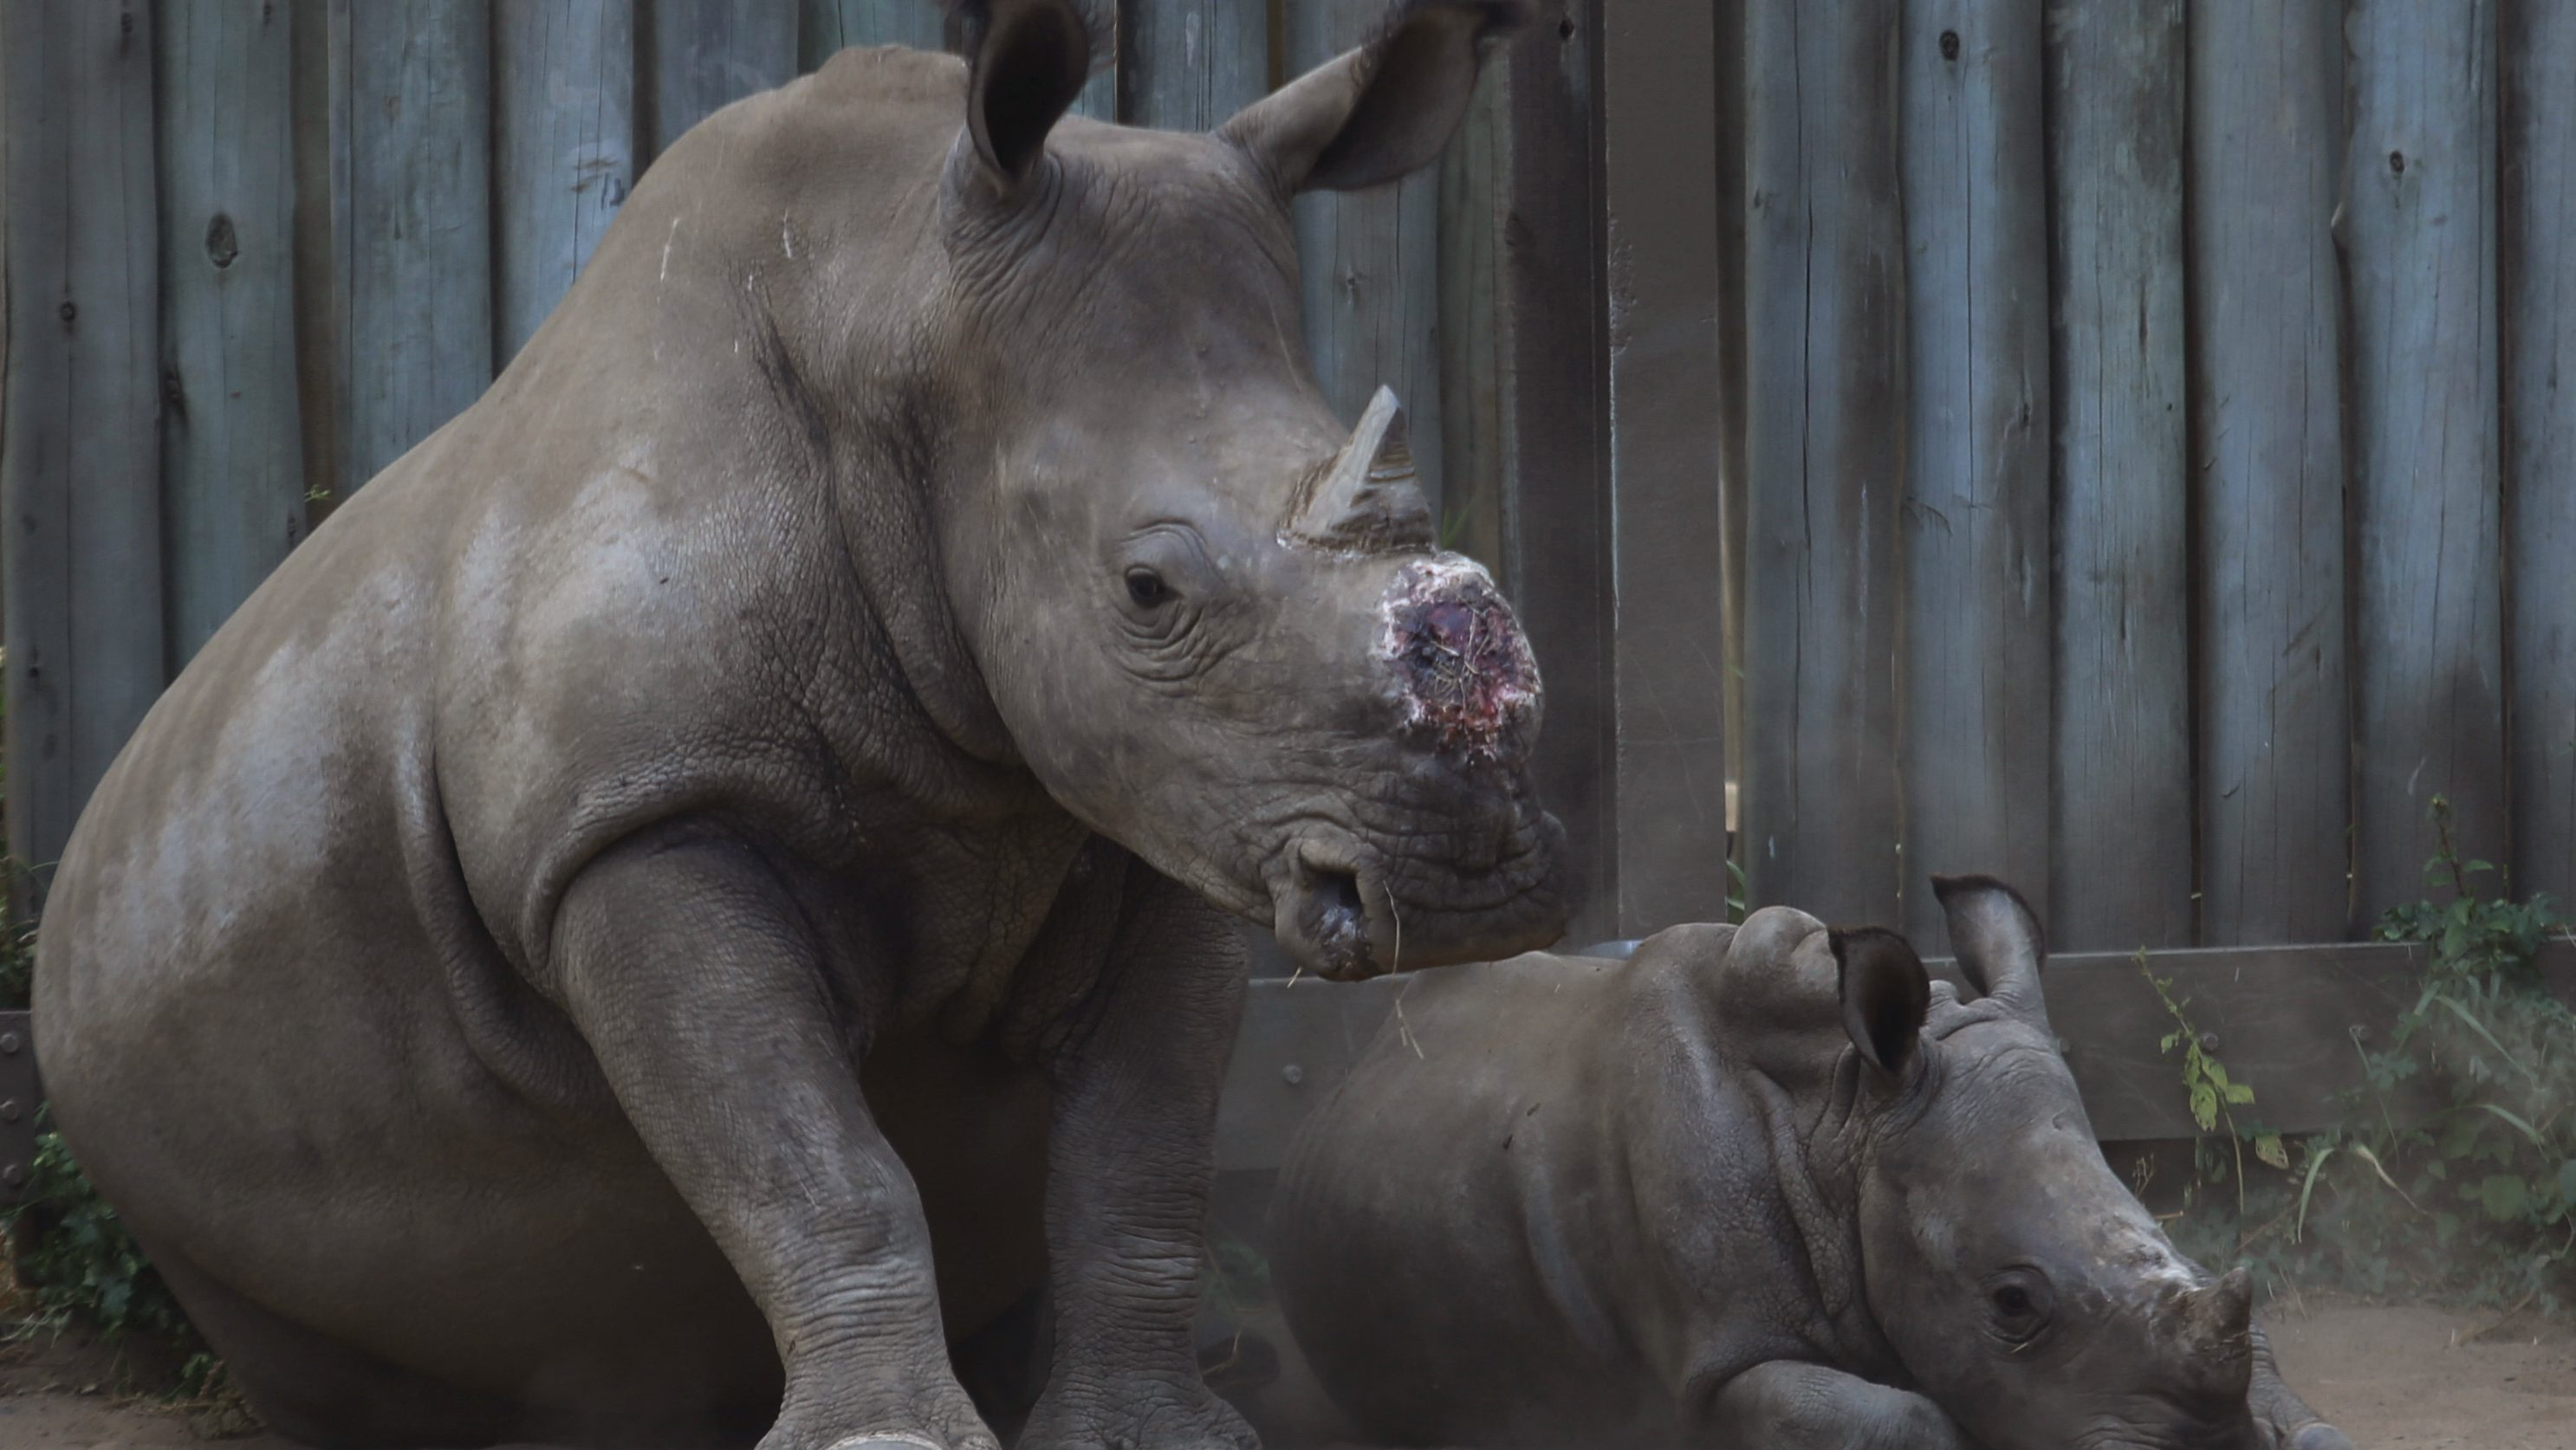 FILE -- In this file photo taken Monday, Feb. 15, 2016 a dehorned rhino and her calf in their corral at a rhino orphanage in the Hluhluwe-iMfolozi Game Reserve in the KwaZulu Natal province South Africa. Eager to stop wildlife poaching, some in Africa are taking the drastic step to de-horn rhinos before the illegal hunters do.